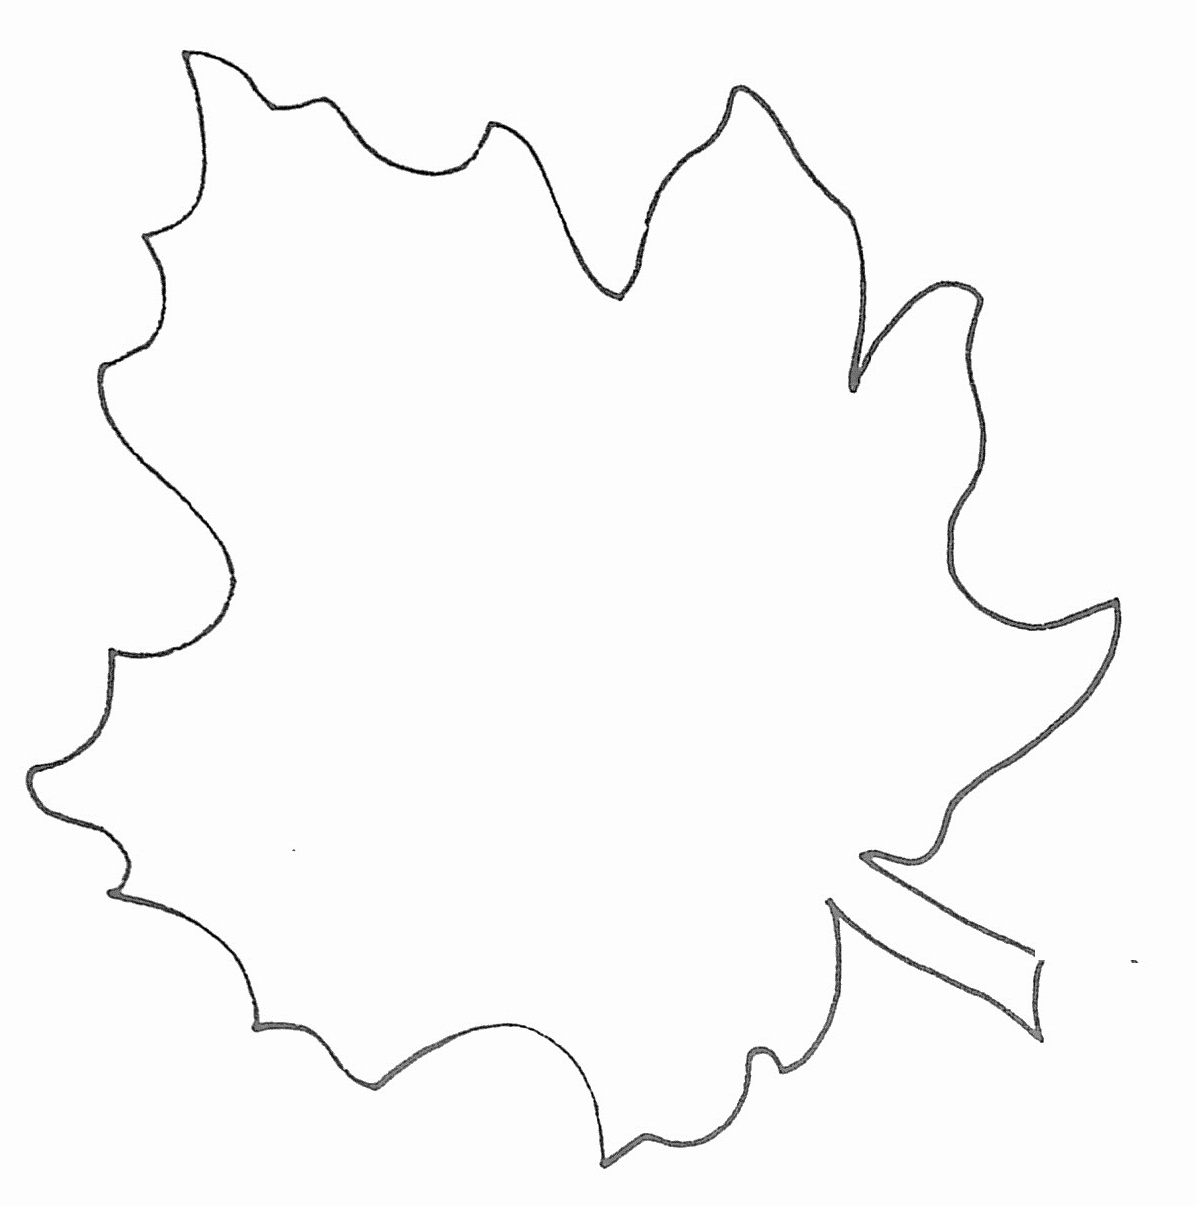 Free Printable Leaf Template | Mathosproject - Free Printable Leaf Template